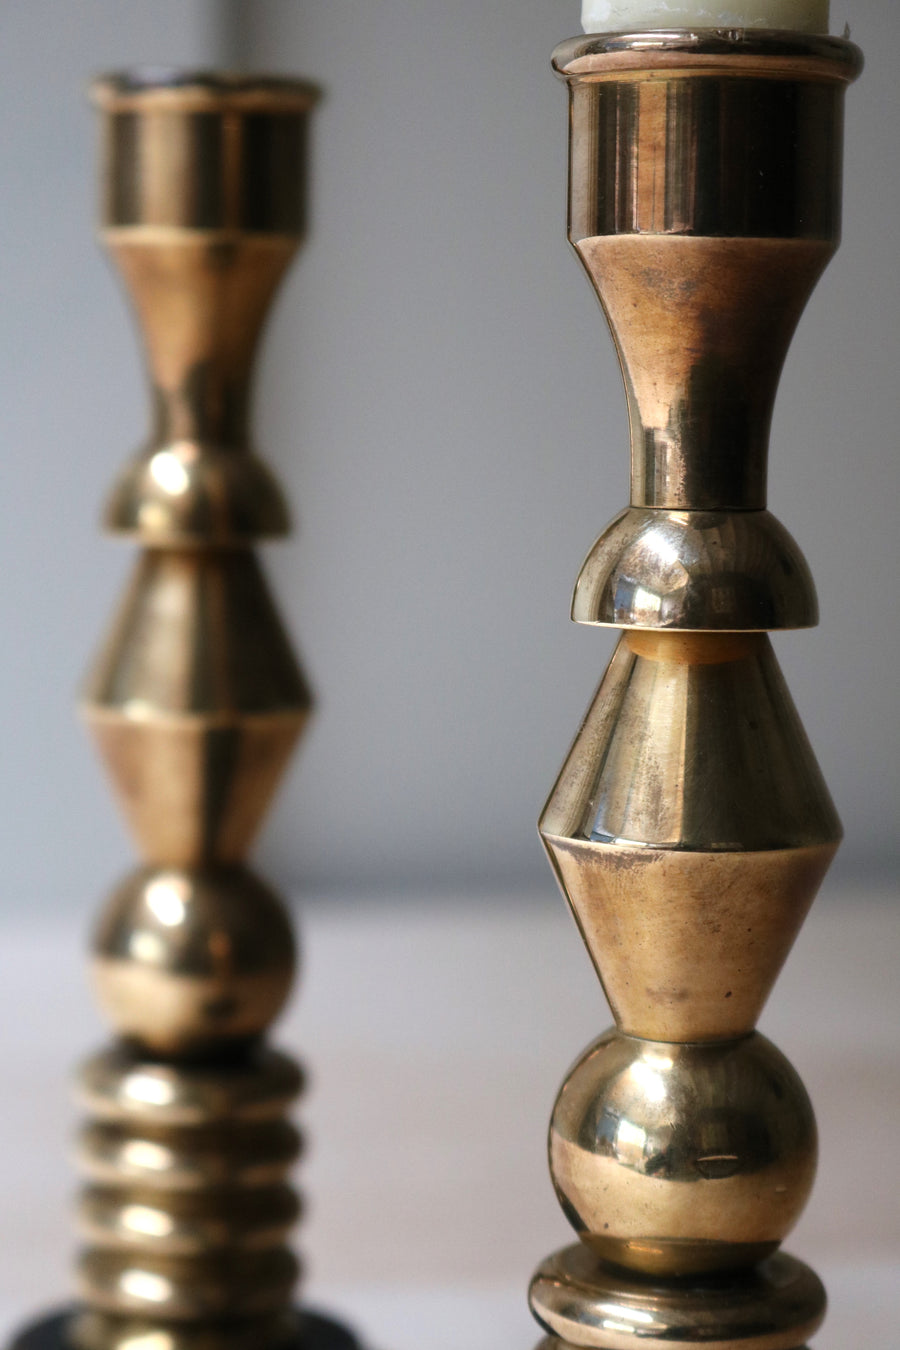 Deco Candlesticks - Form + Beyond graphic mirrors & wall art gallery london